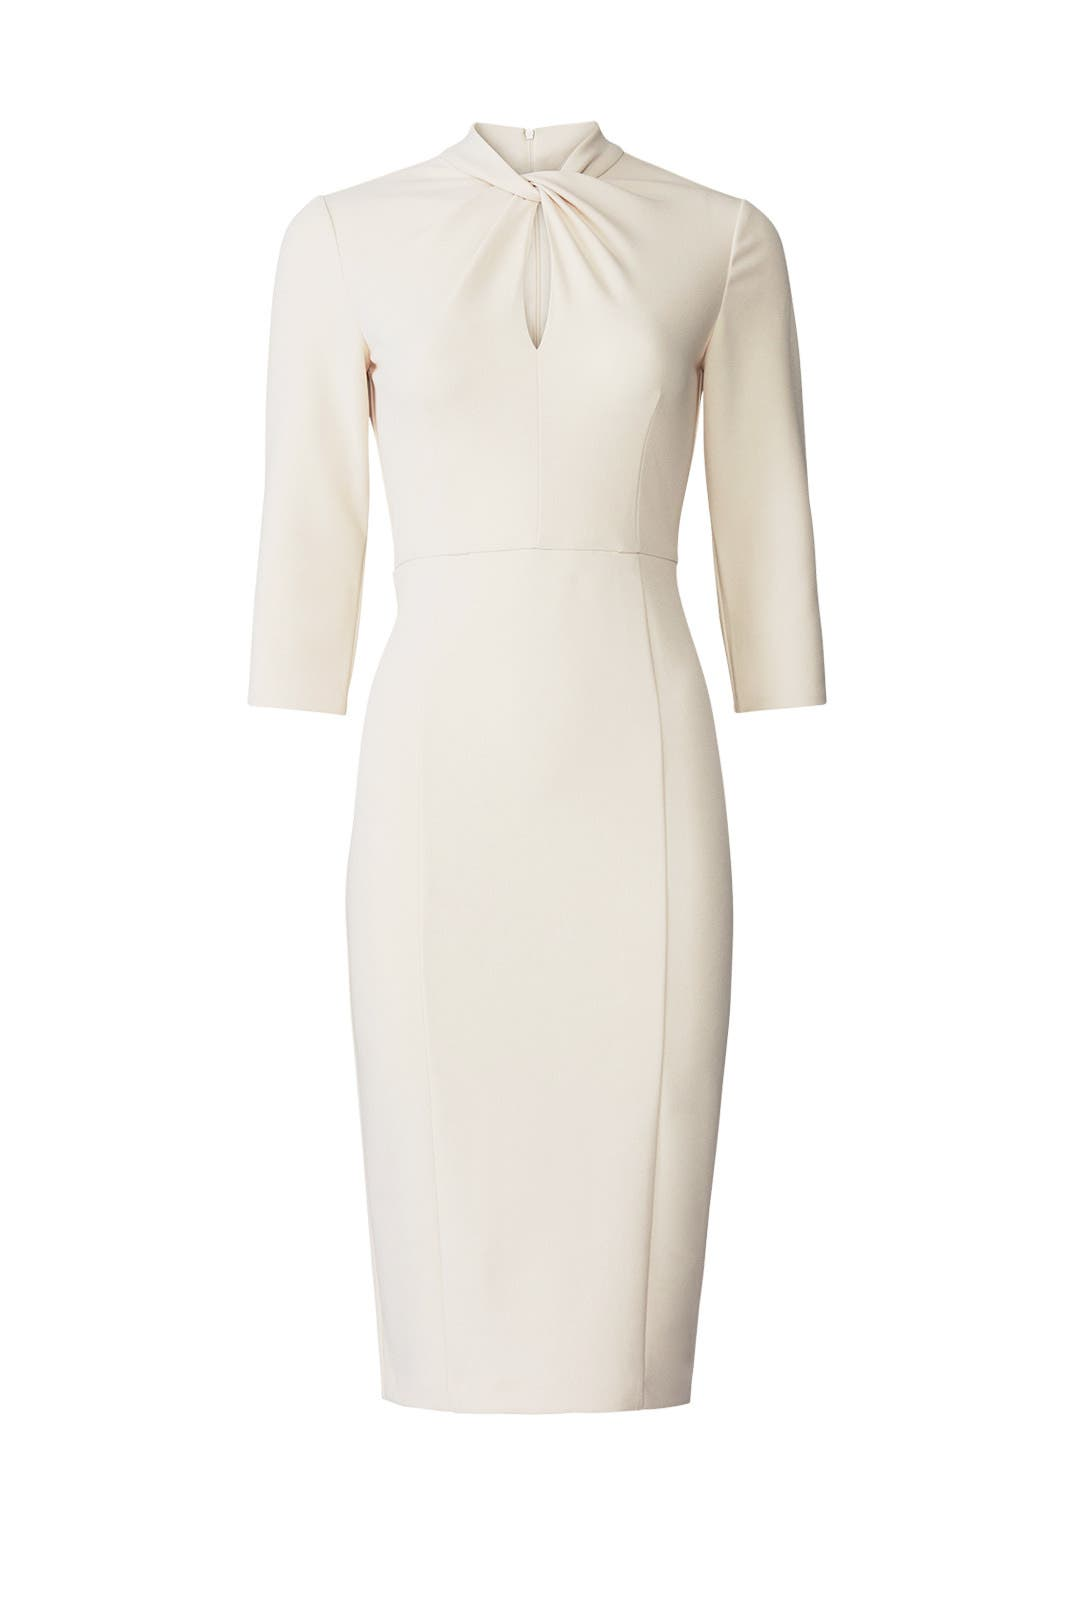 7763412b4296 Horn Keyhole Dress by Donna Morgan for $30   Rent the Runway